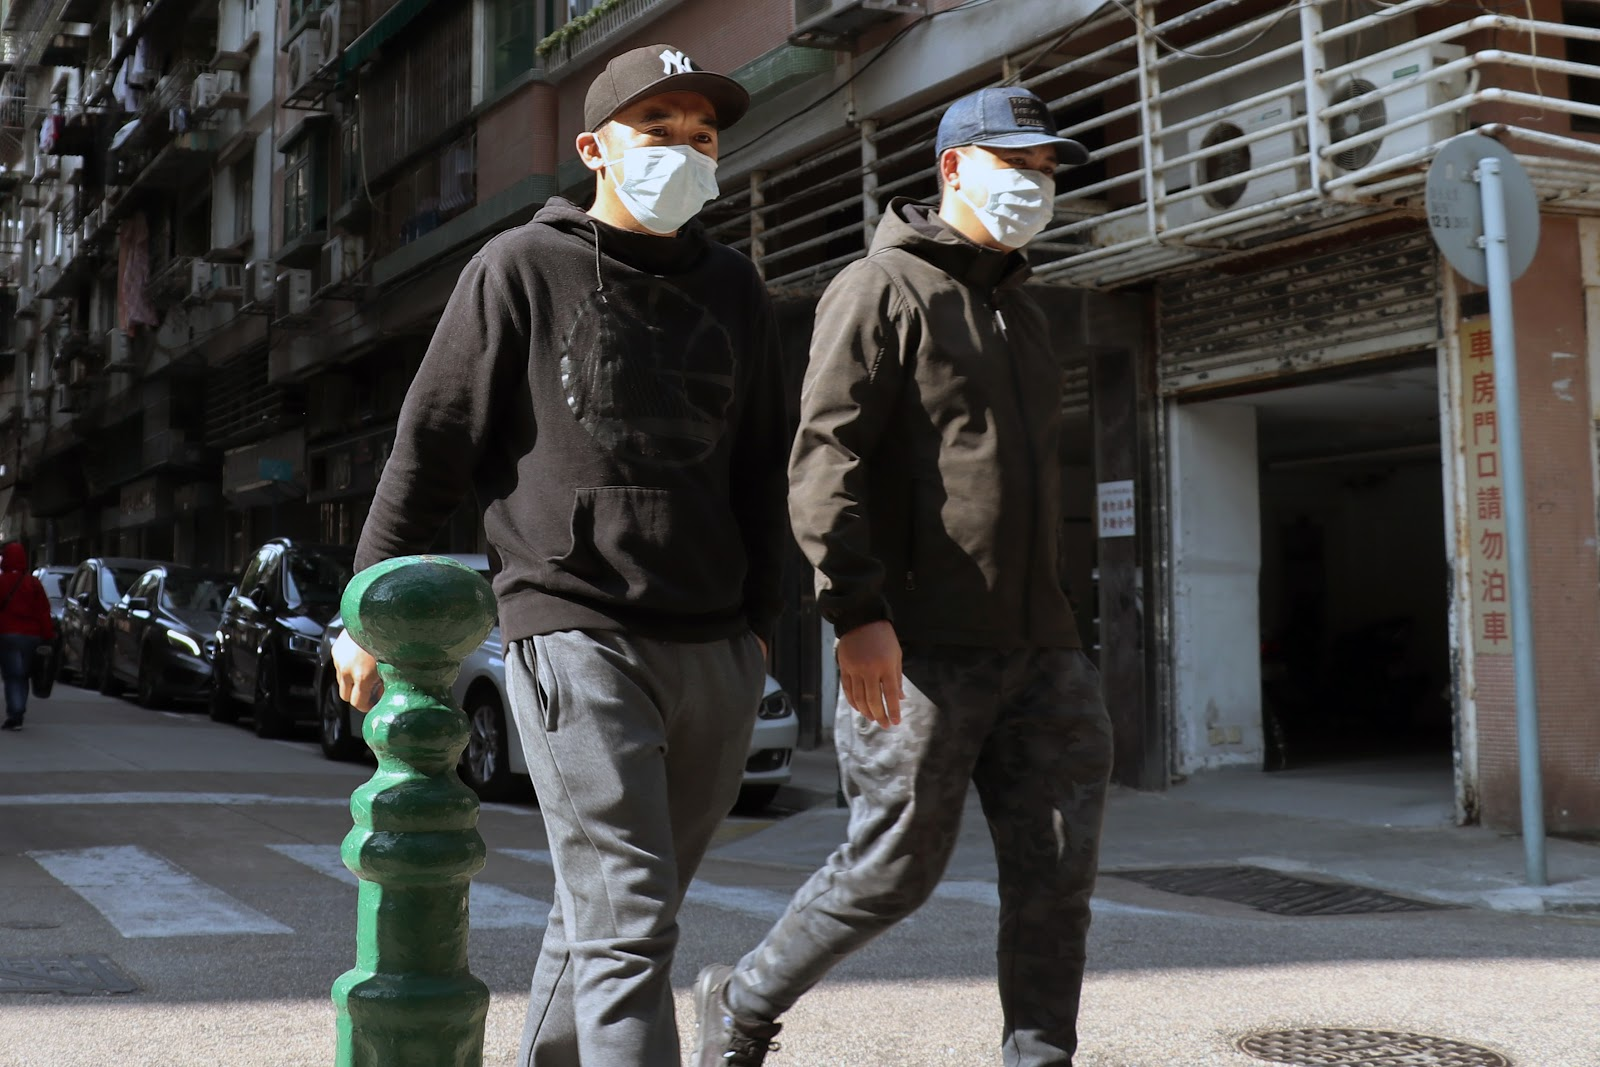 People wearing masks to protect themselves from coronavirus